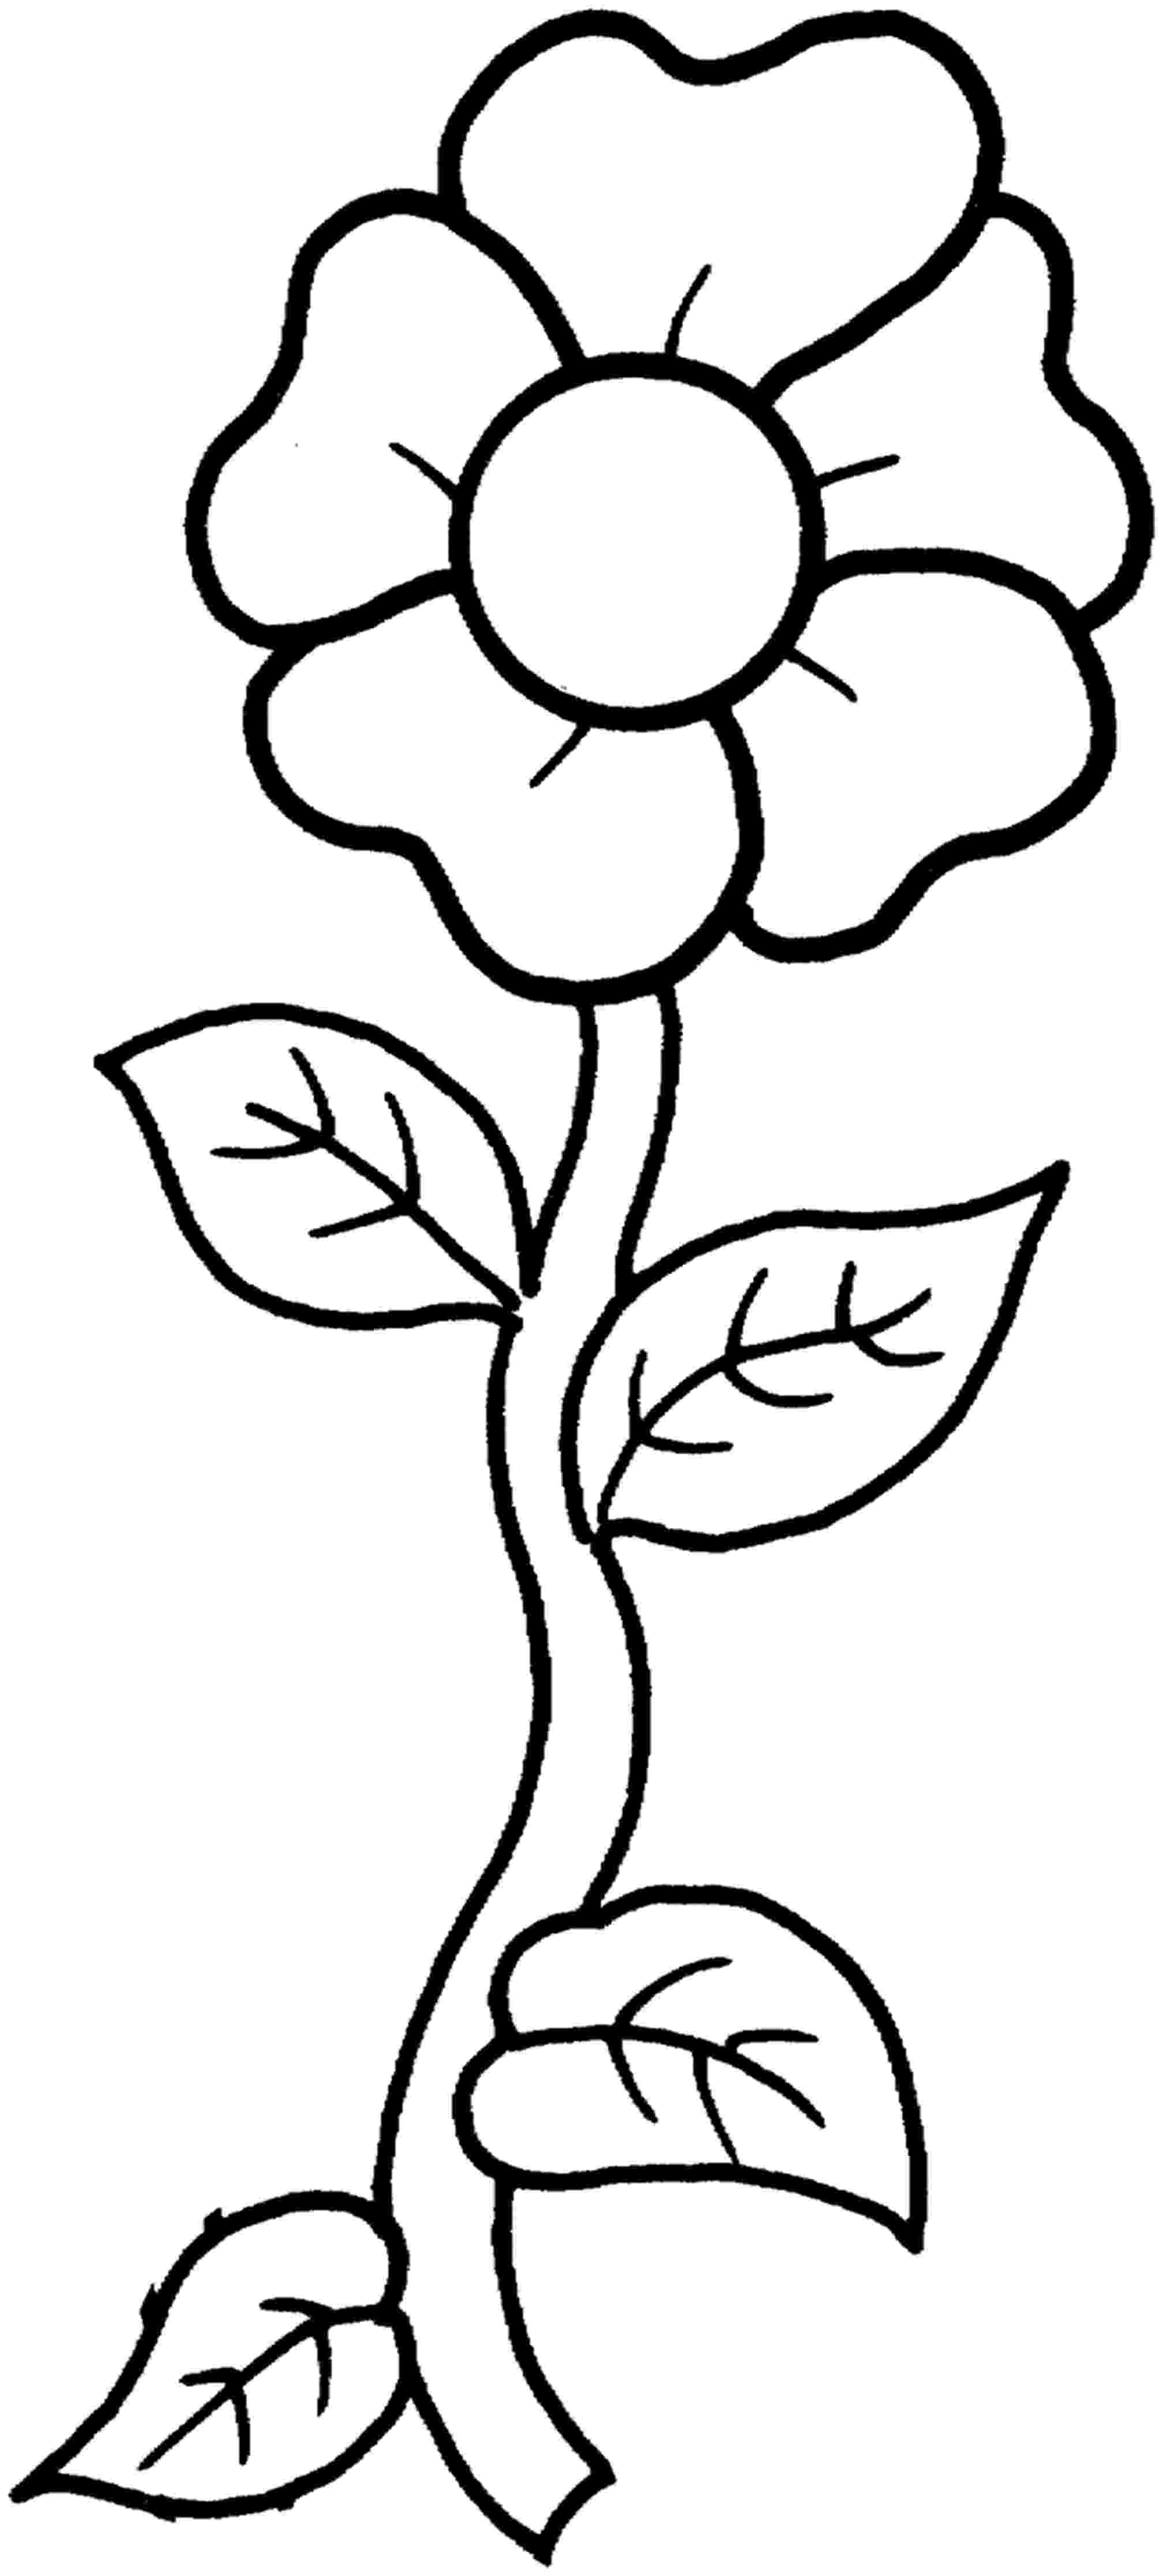 printable coloring pages plants free printable flower coloring pages for kids best plants printable pages coloring